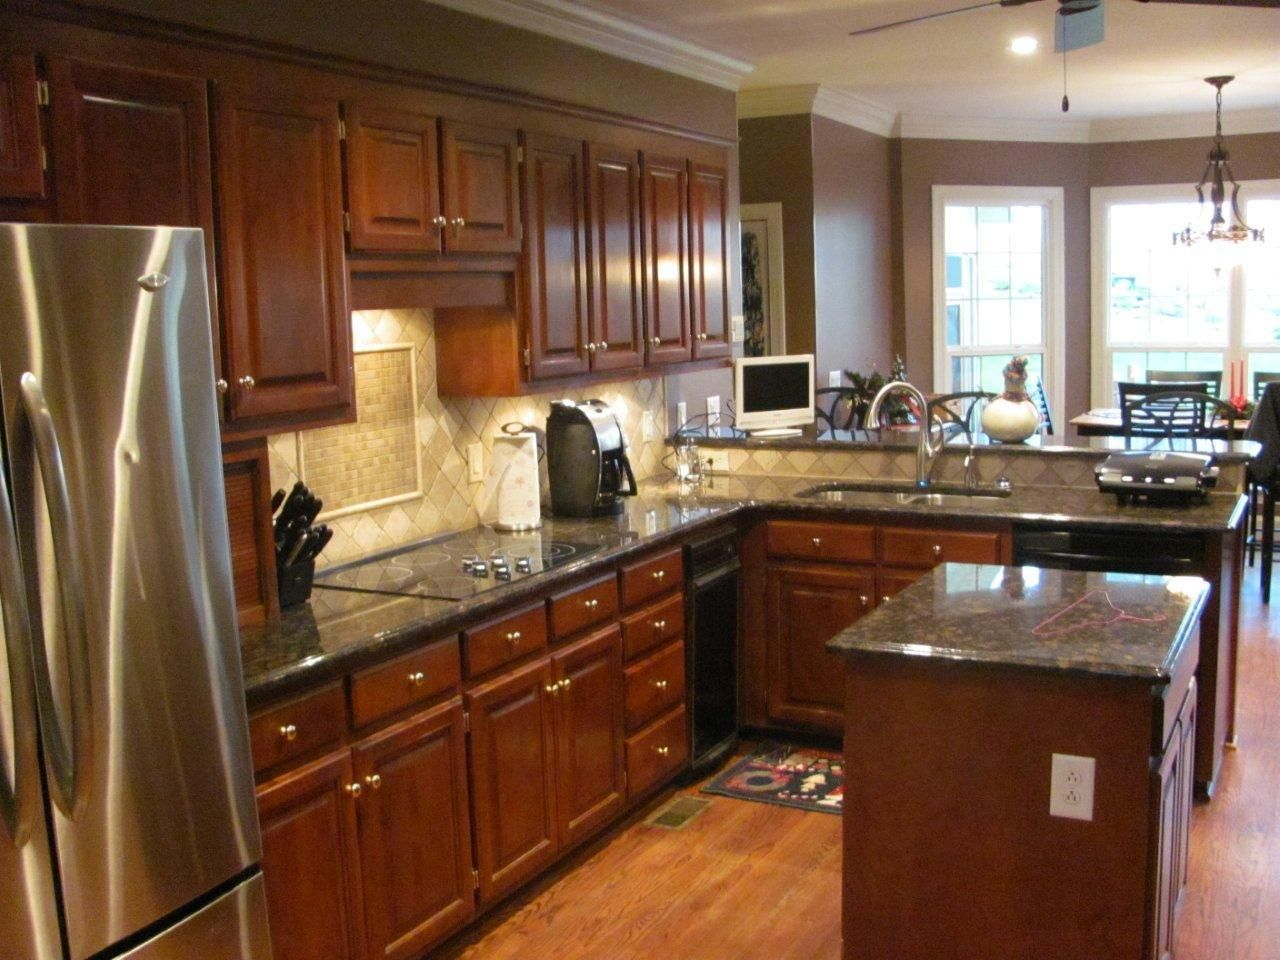 Remodeled Kitchens  Kitchen Remodel In Charlotte With Eatin Fascinating Remodeling Kitchen Design Ideas